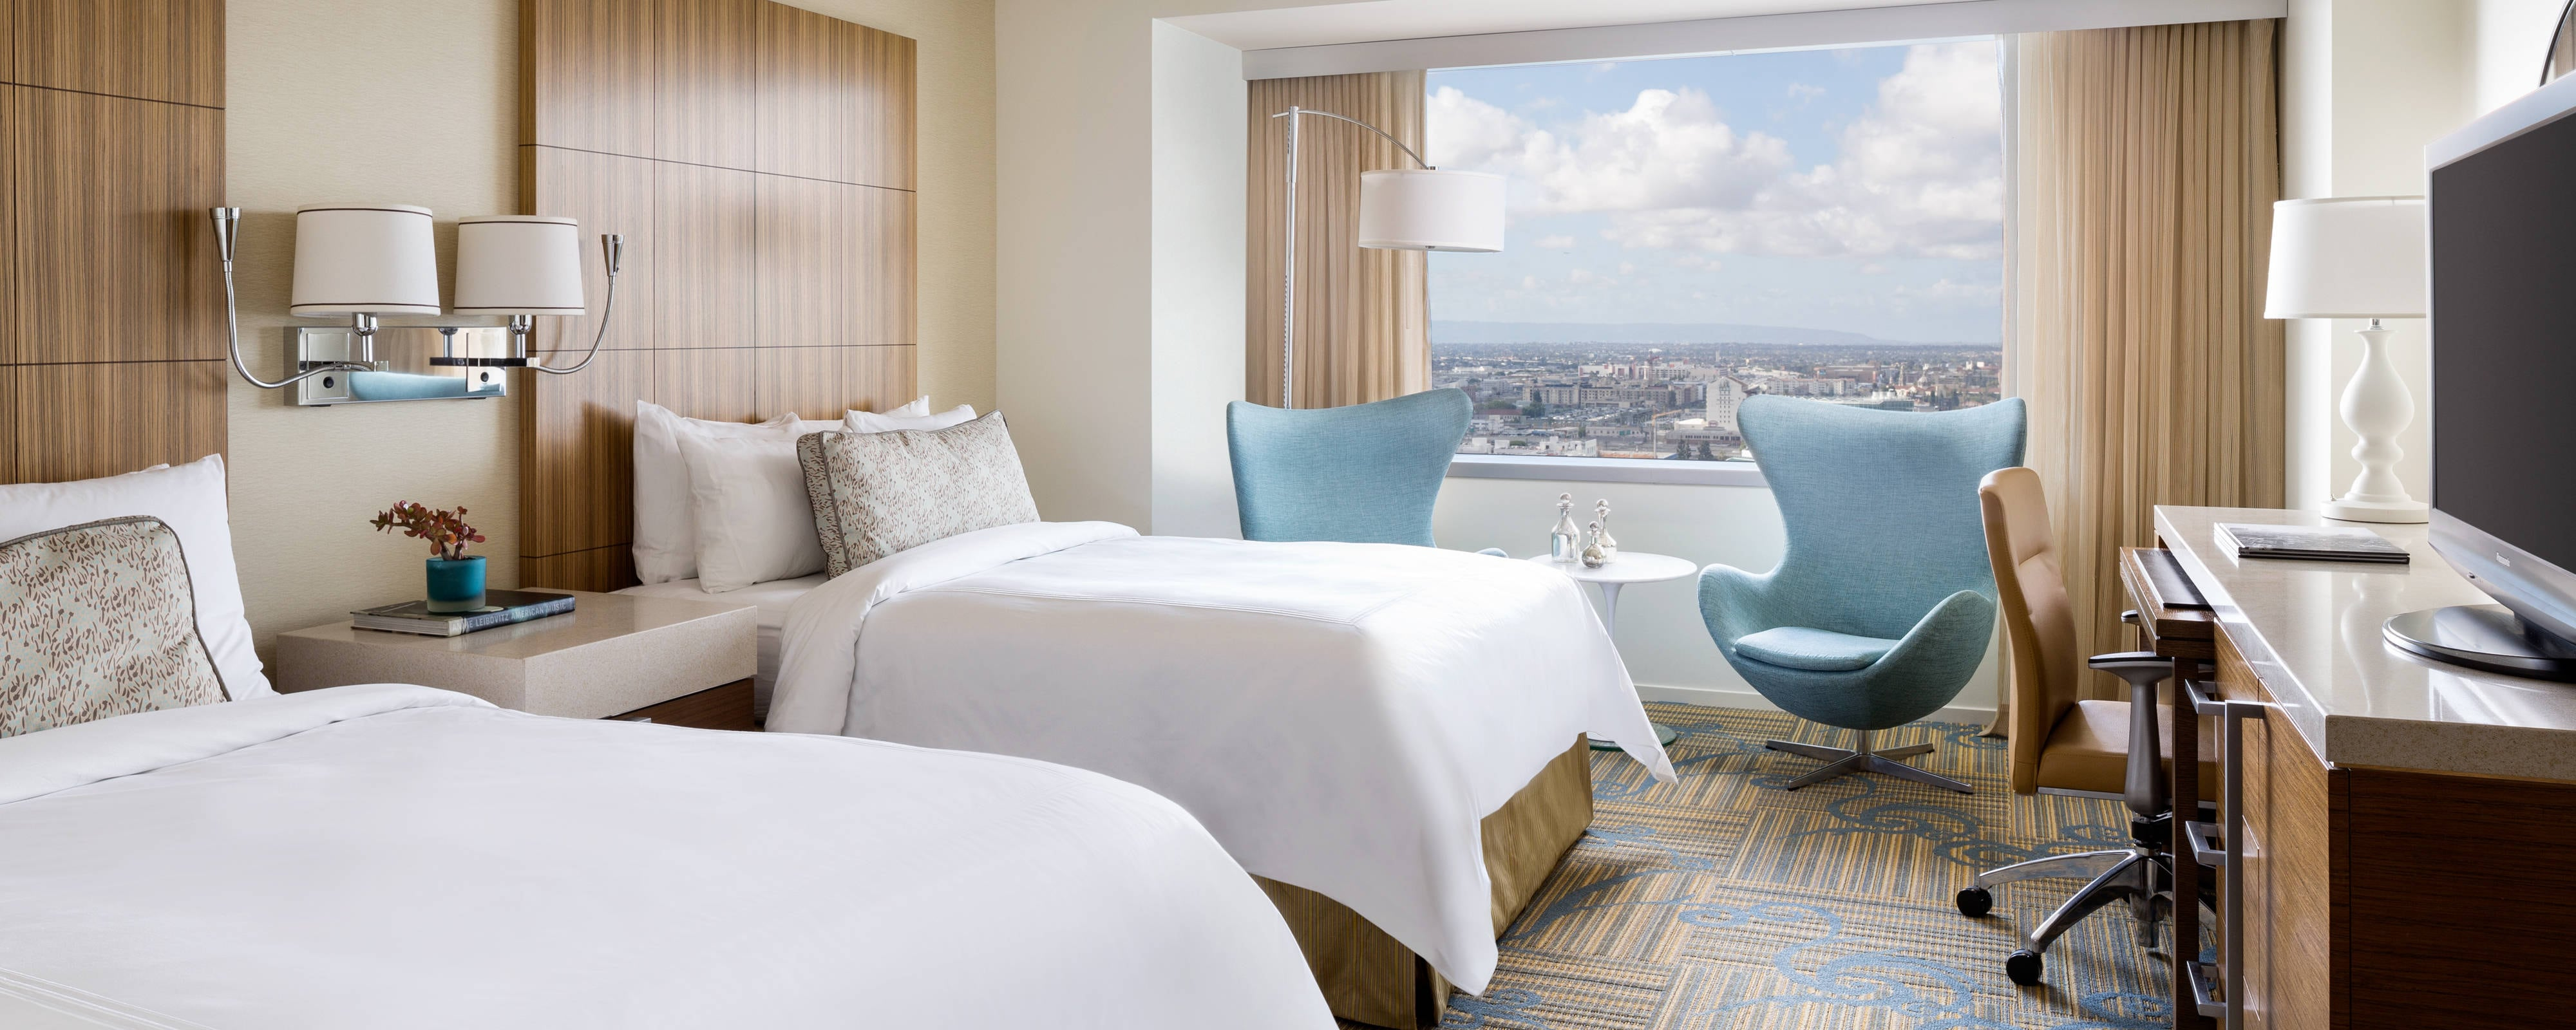 Rooms: L.A. LIVE City Center Hotel Rooms - Suite